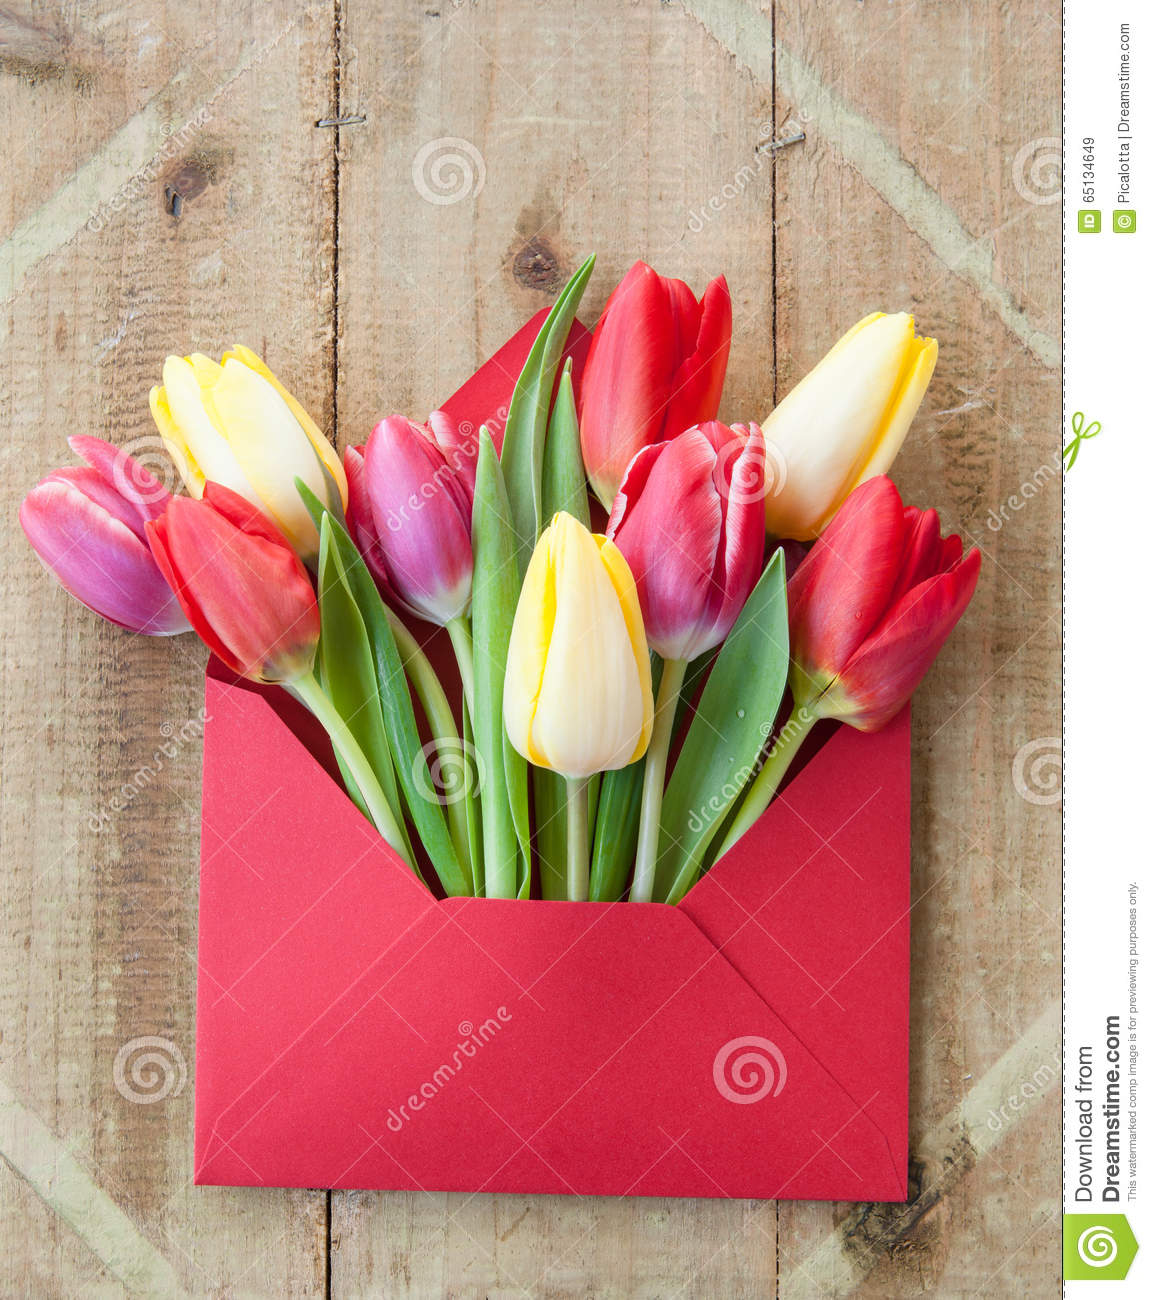 Colorful Flowers In Envelope Stock Image - Image of multi, colors ...